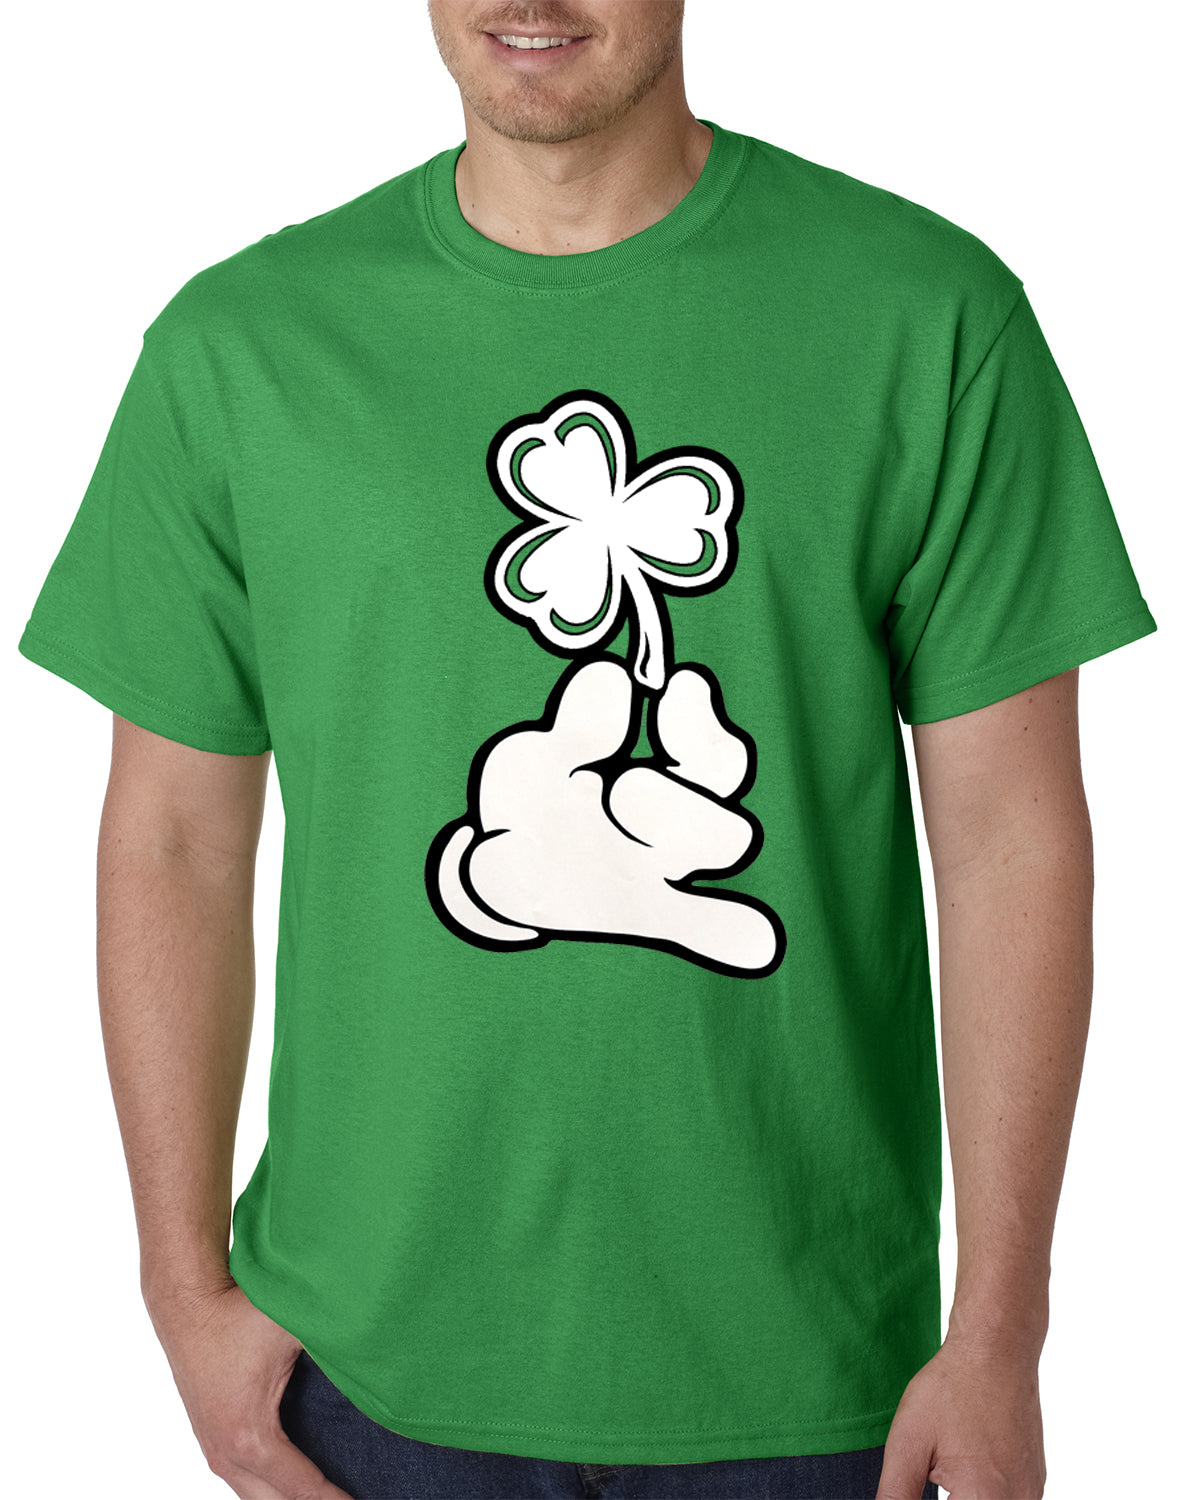 St. Patrick's Day Cartoon Hand Holding Shamrock Mens T-shirt